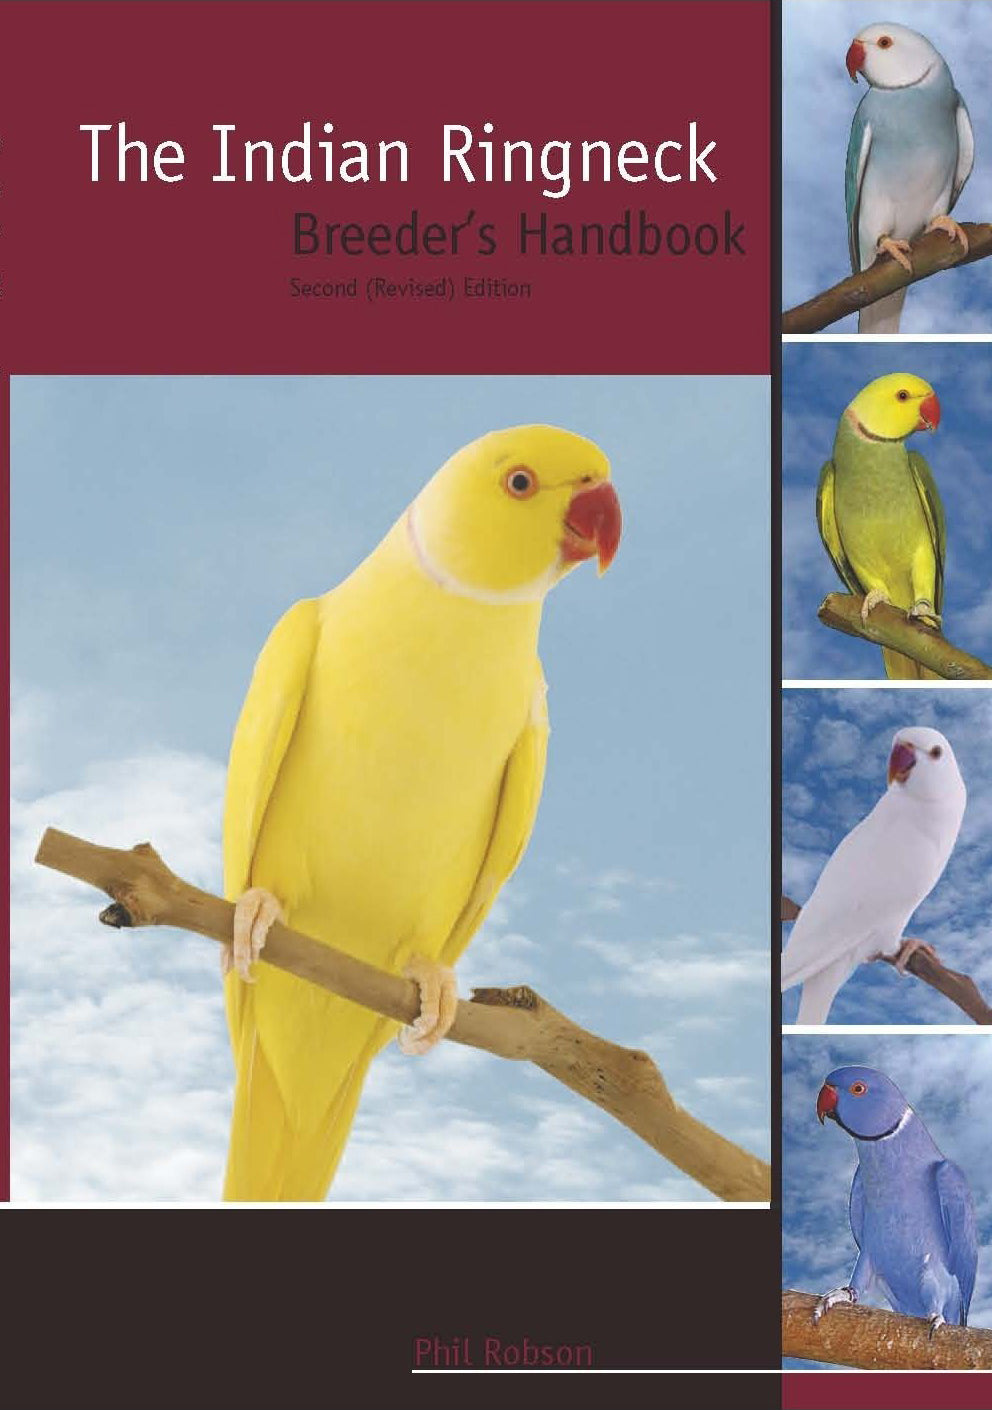 The Indian Ringneck Breeders Handbook (Revised Edition)